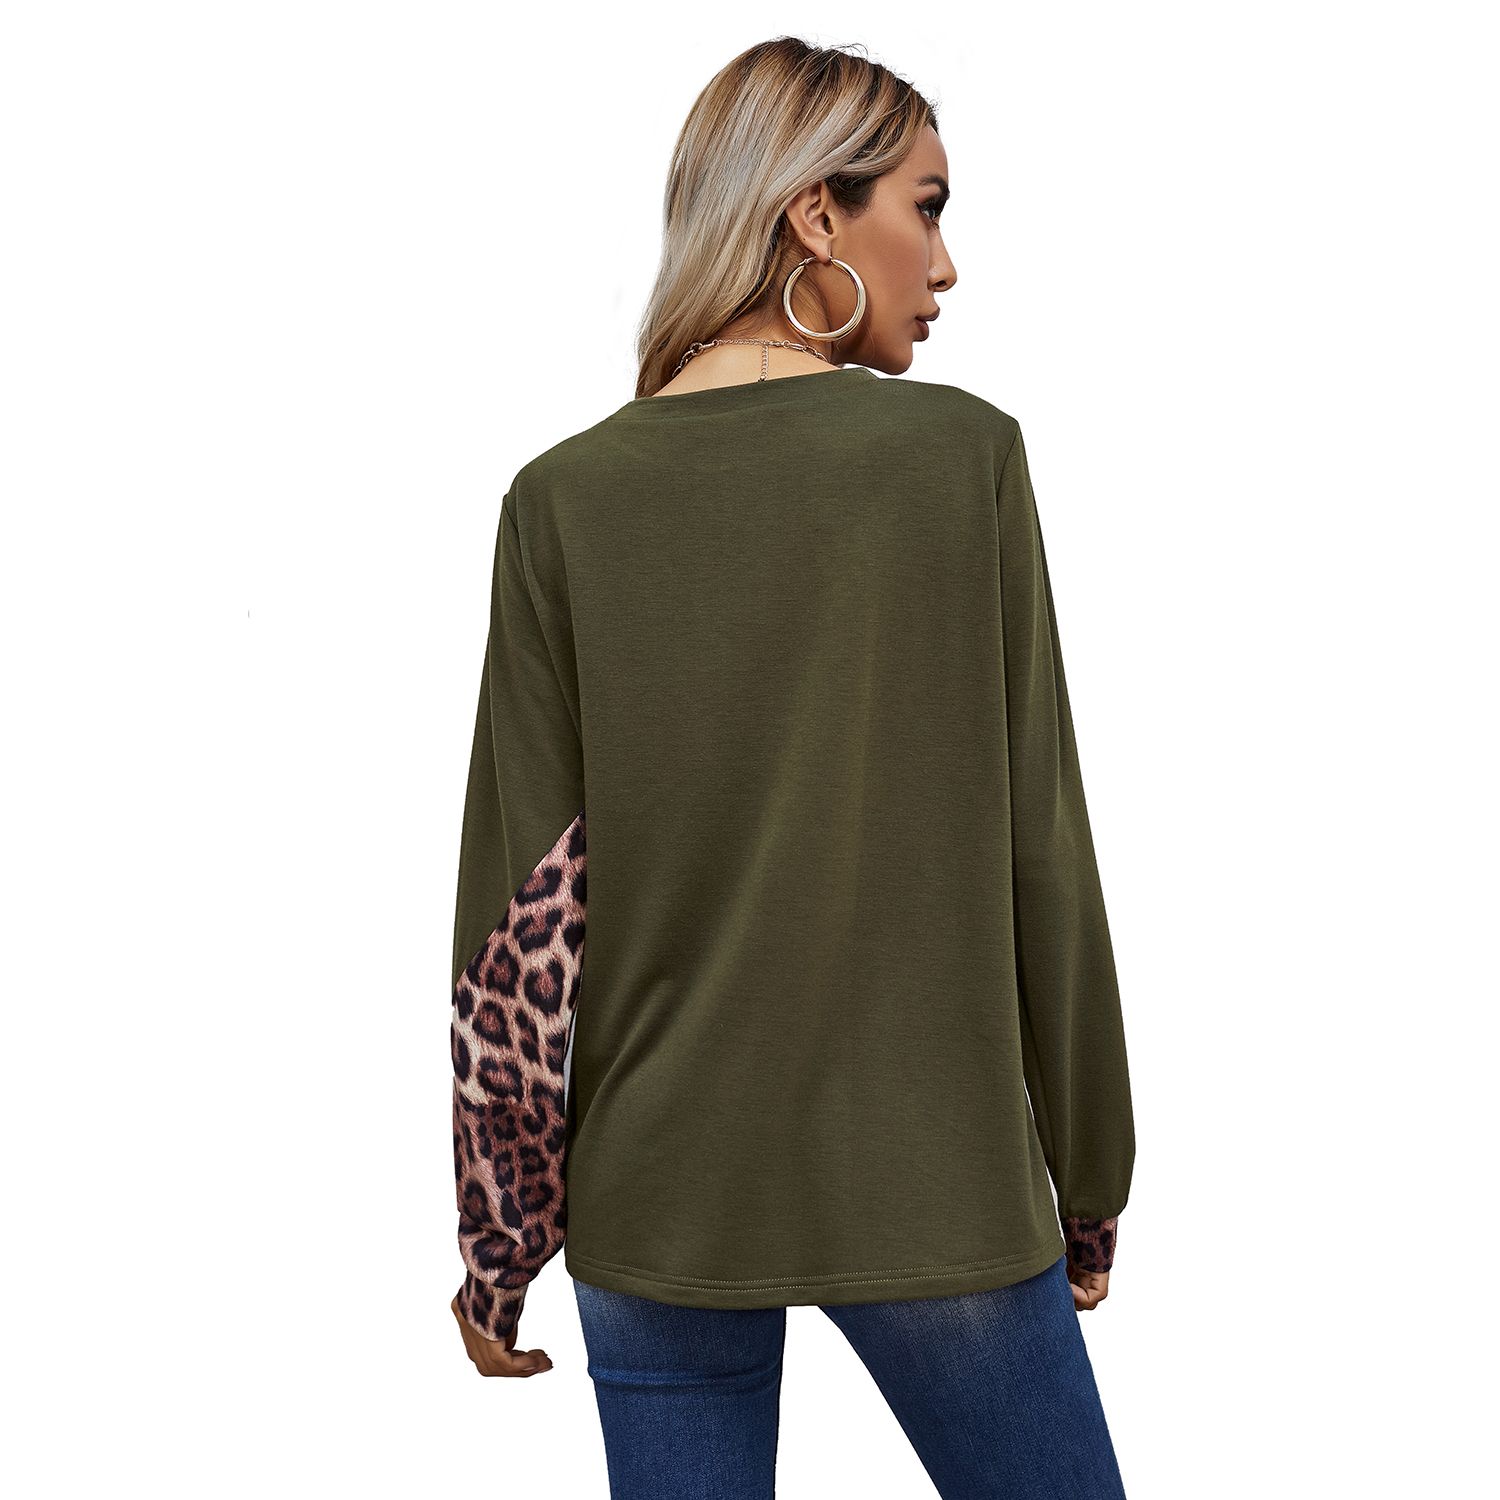 CUVWON Knitted Leopard Print Sexy & Club Casual Digital Printing Tops For Women